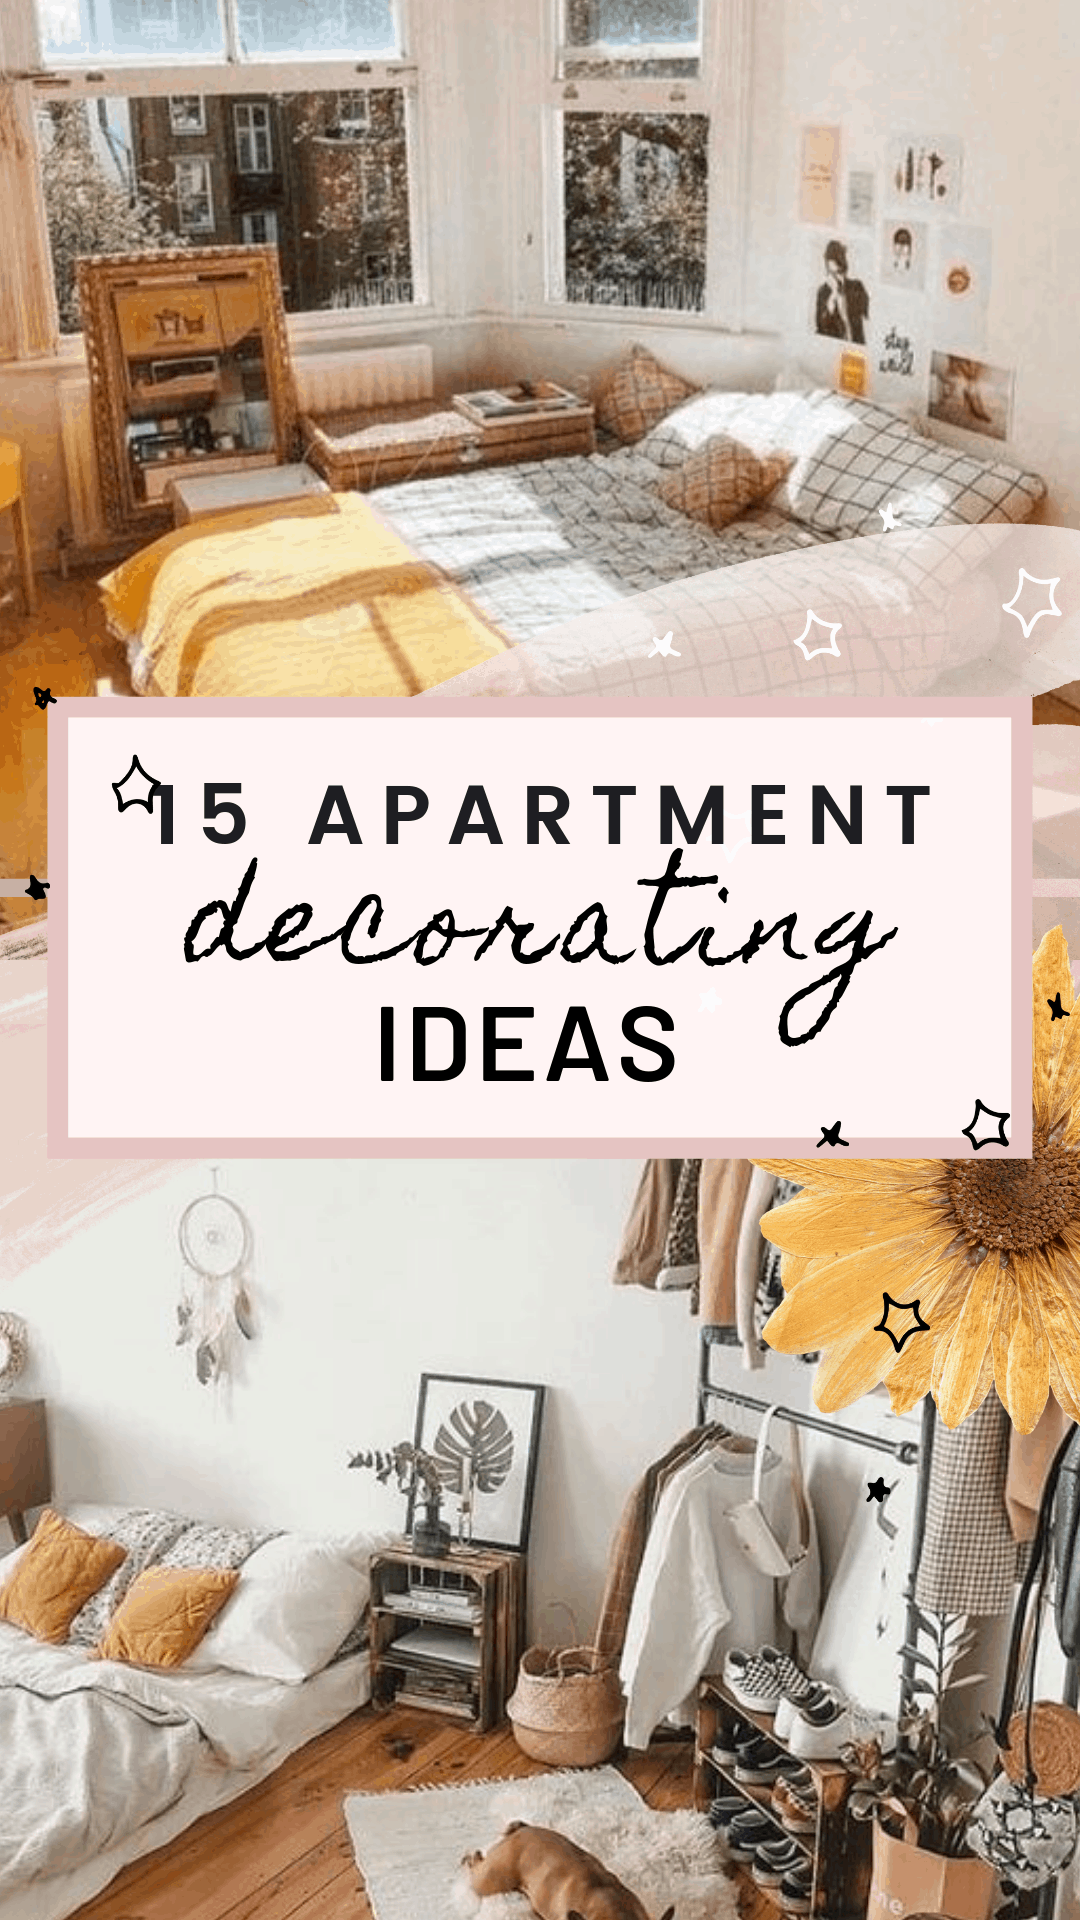 15 Cozy Apartment Decorating Ideas